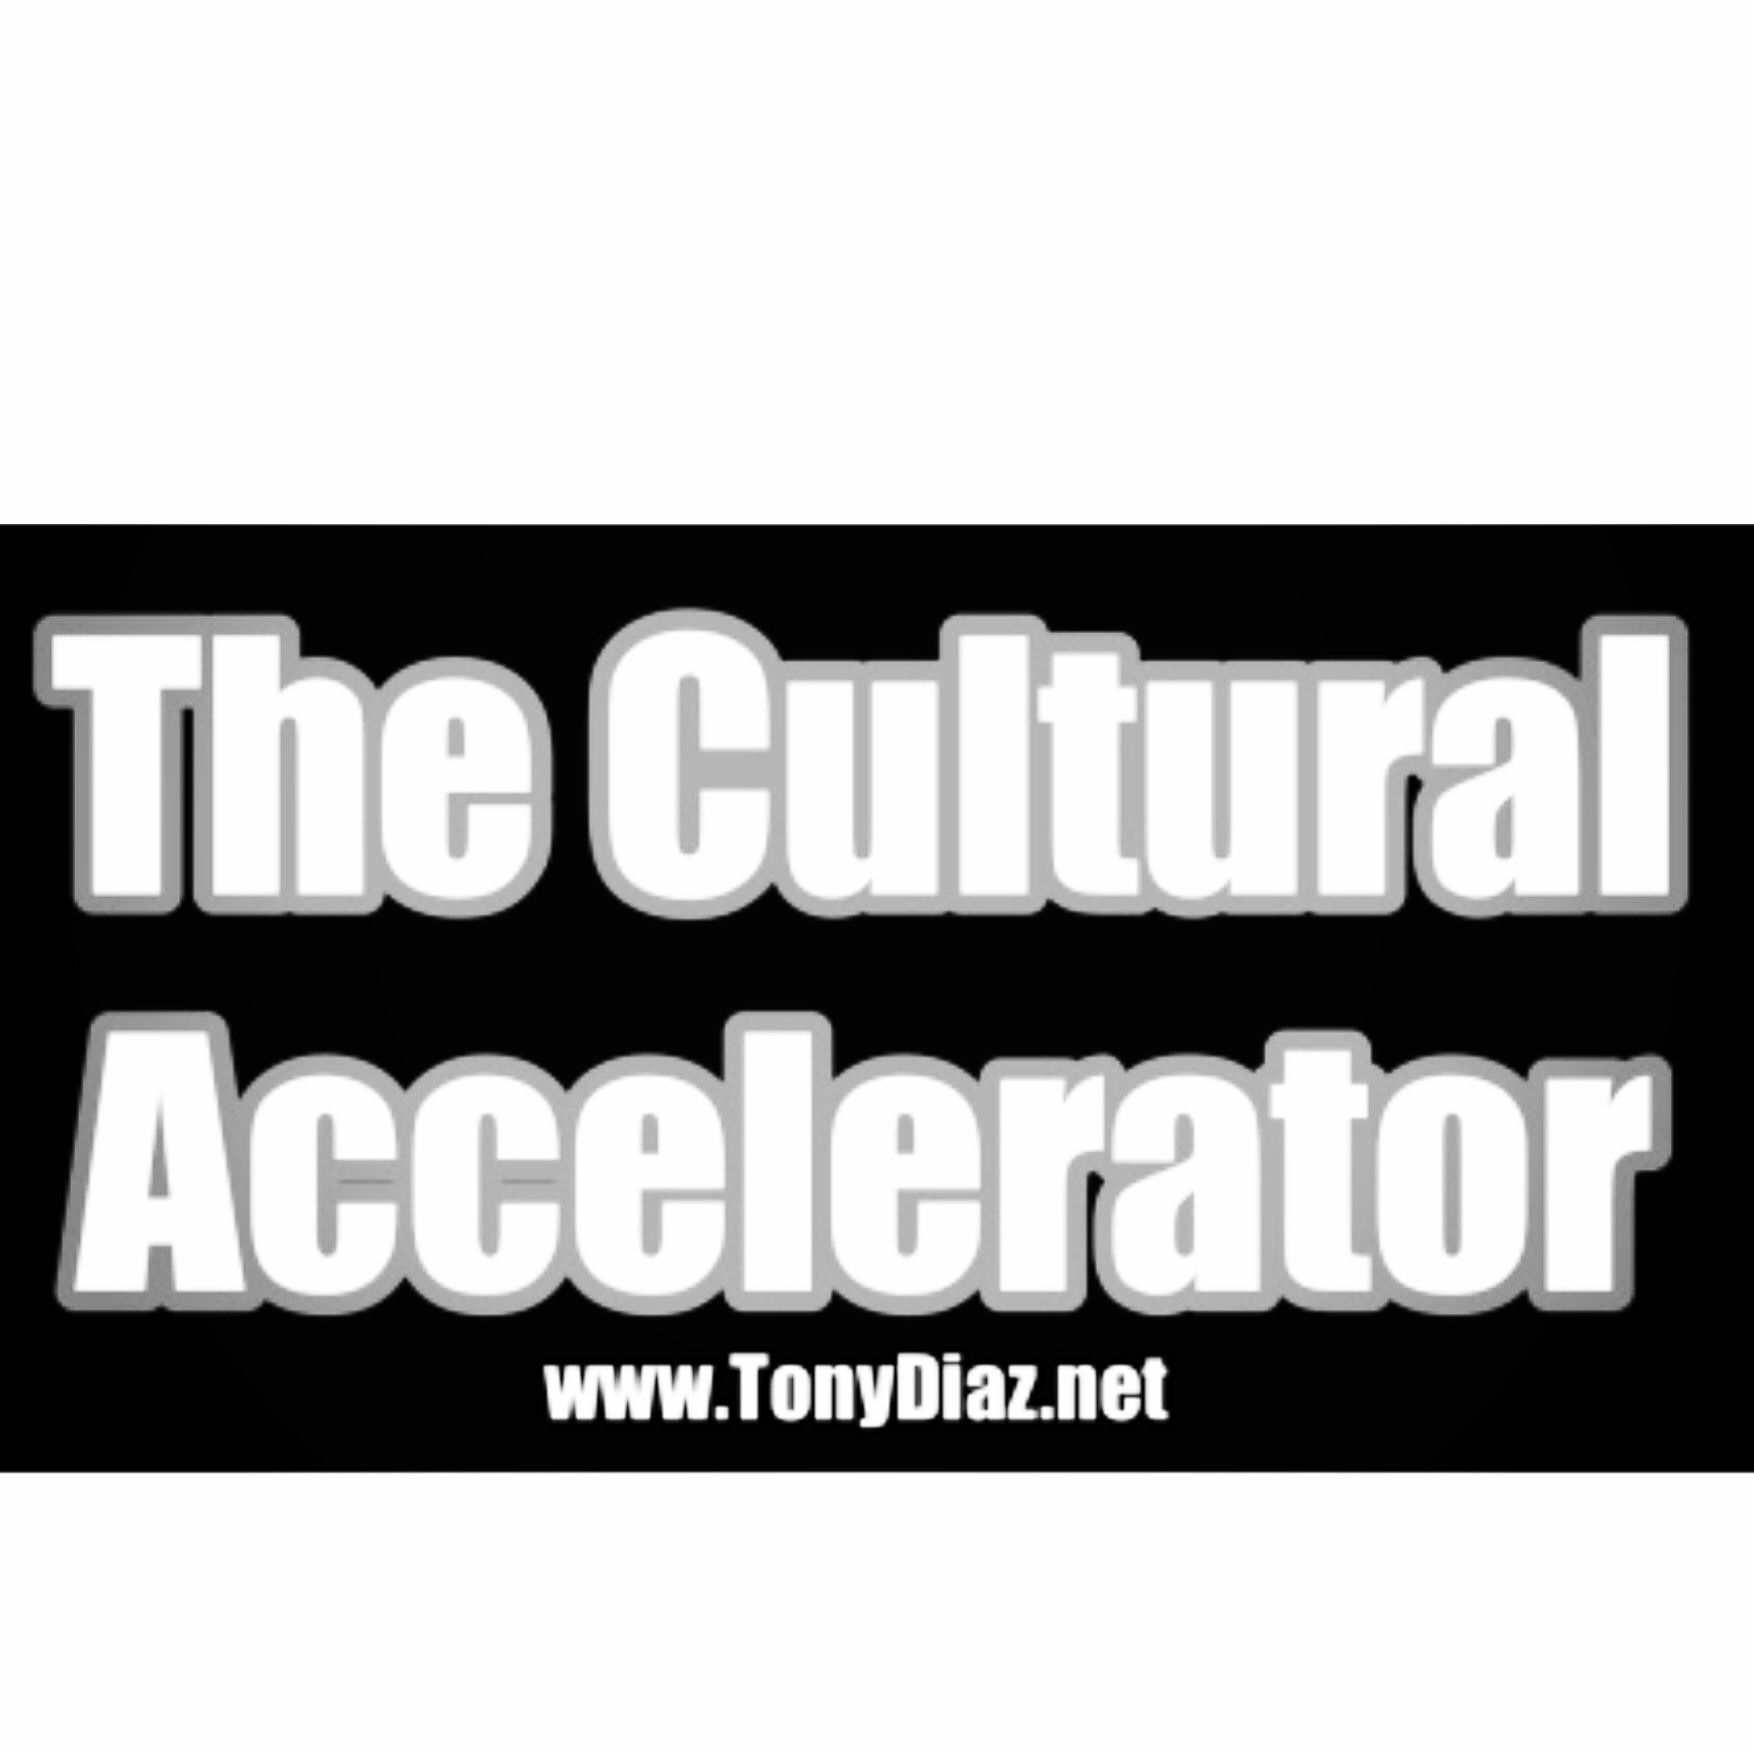 The Era of Cultural Accelerators